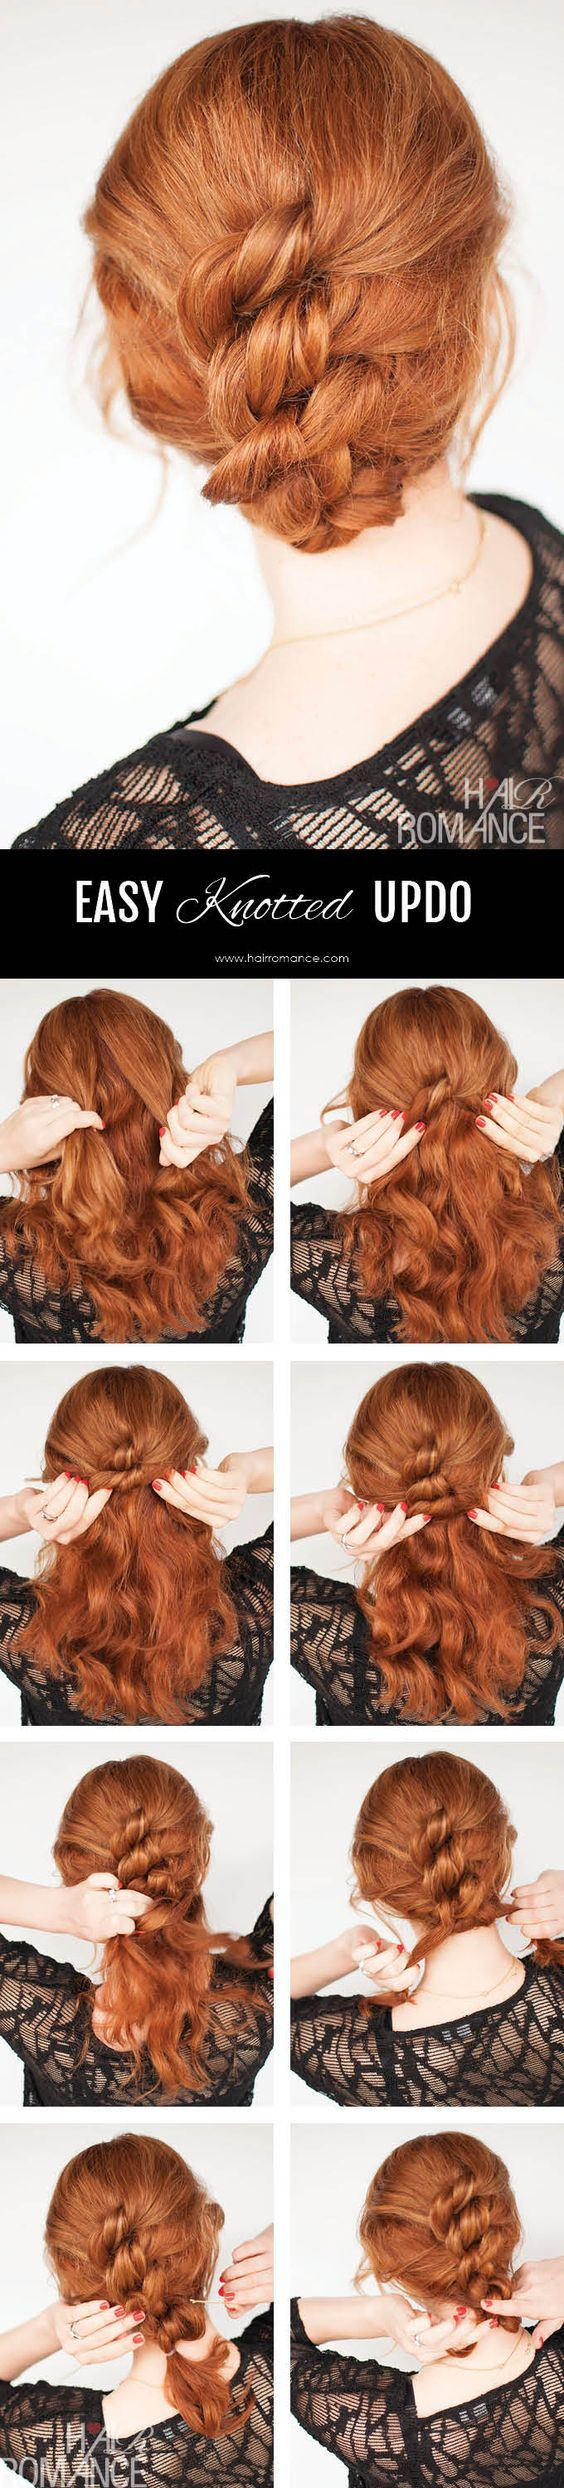 Easy knot updo hair tutorial / http://www.himisspuff.com/easy-diy-braided-hairstyles-tutorials/87/